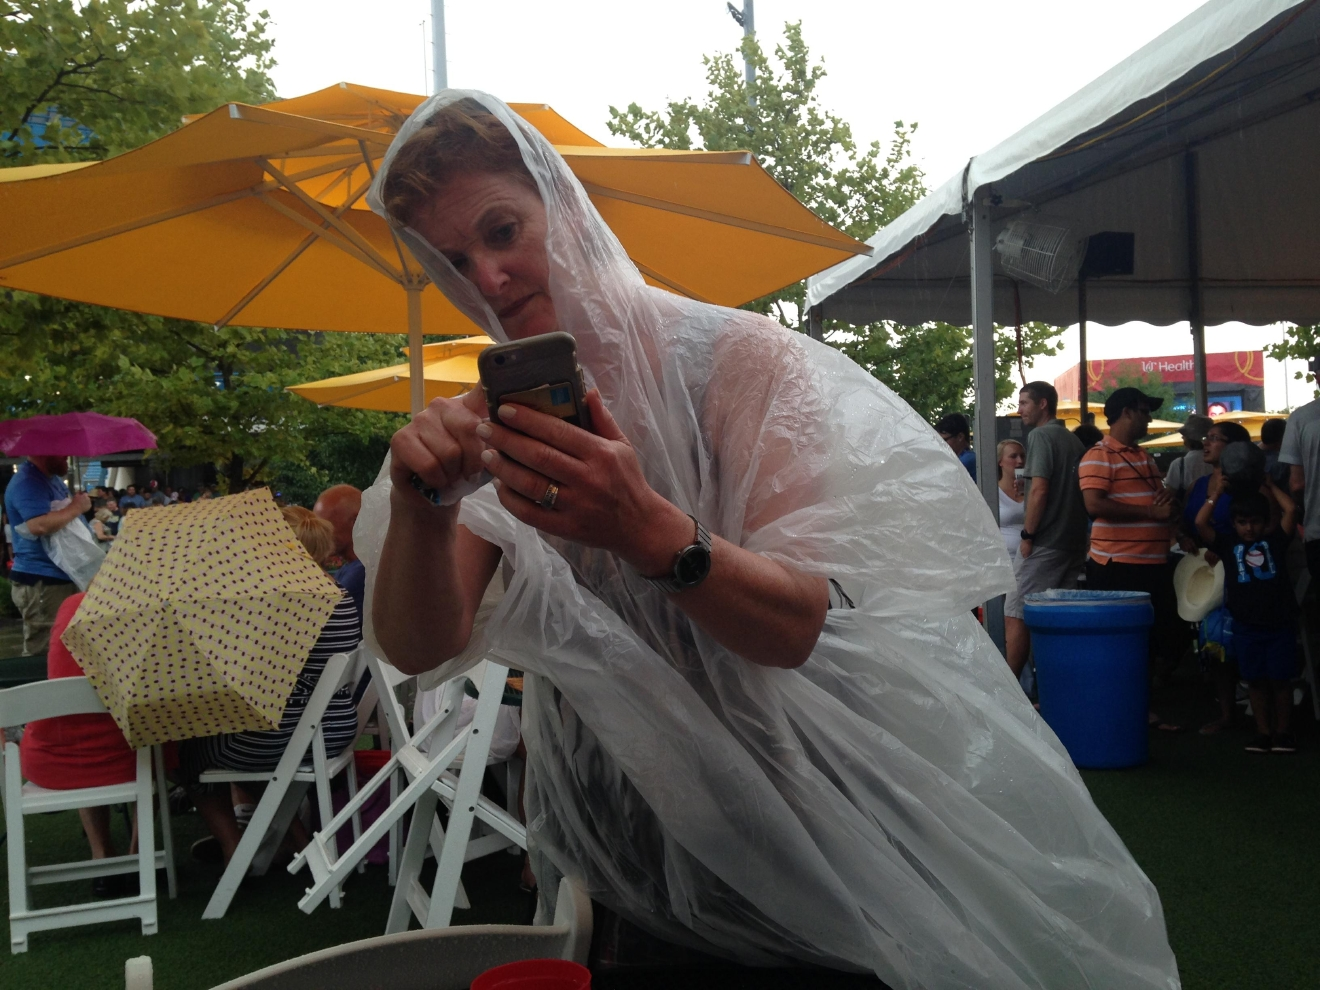 Glynnis Reinhart sporting a fashionable look during Thursday night's rain delay / Image: provided